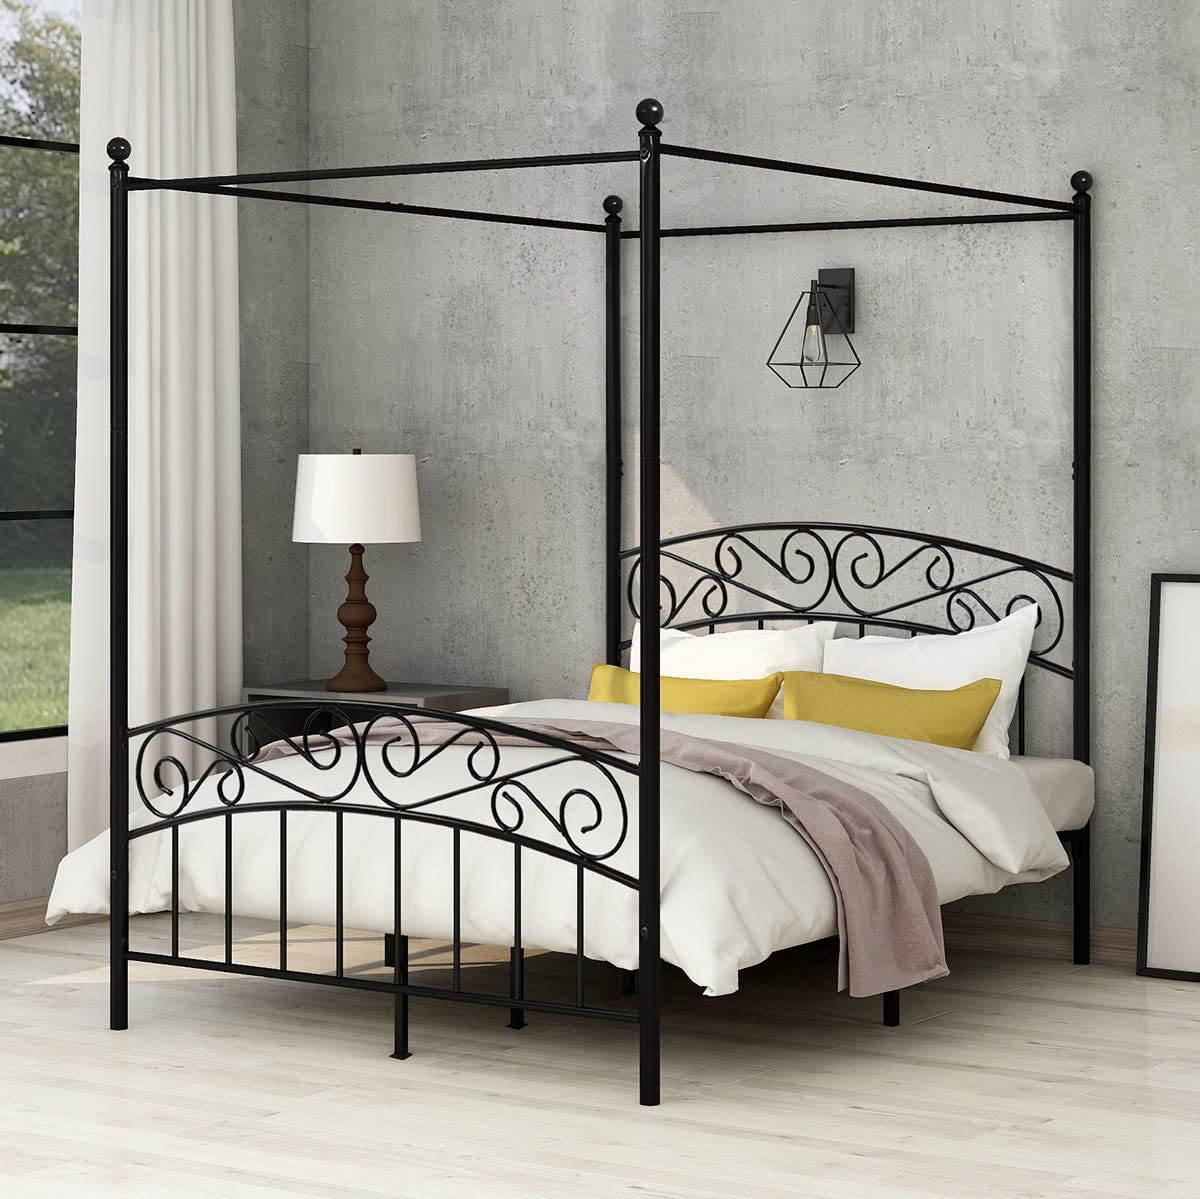 AUFANK Canopy Bed with Sturday Metal Bed Frame No Box Spring Needed Mattress Foundation Black Full Size